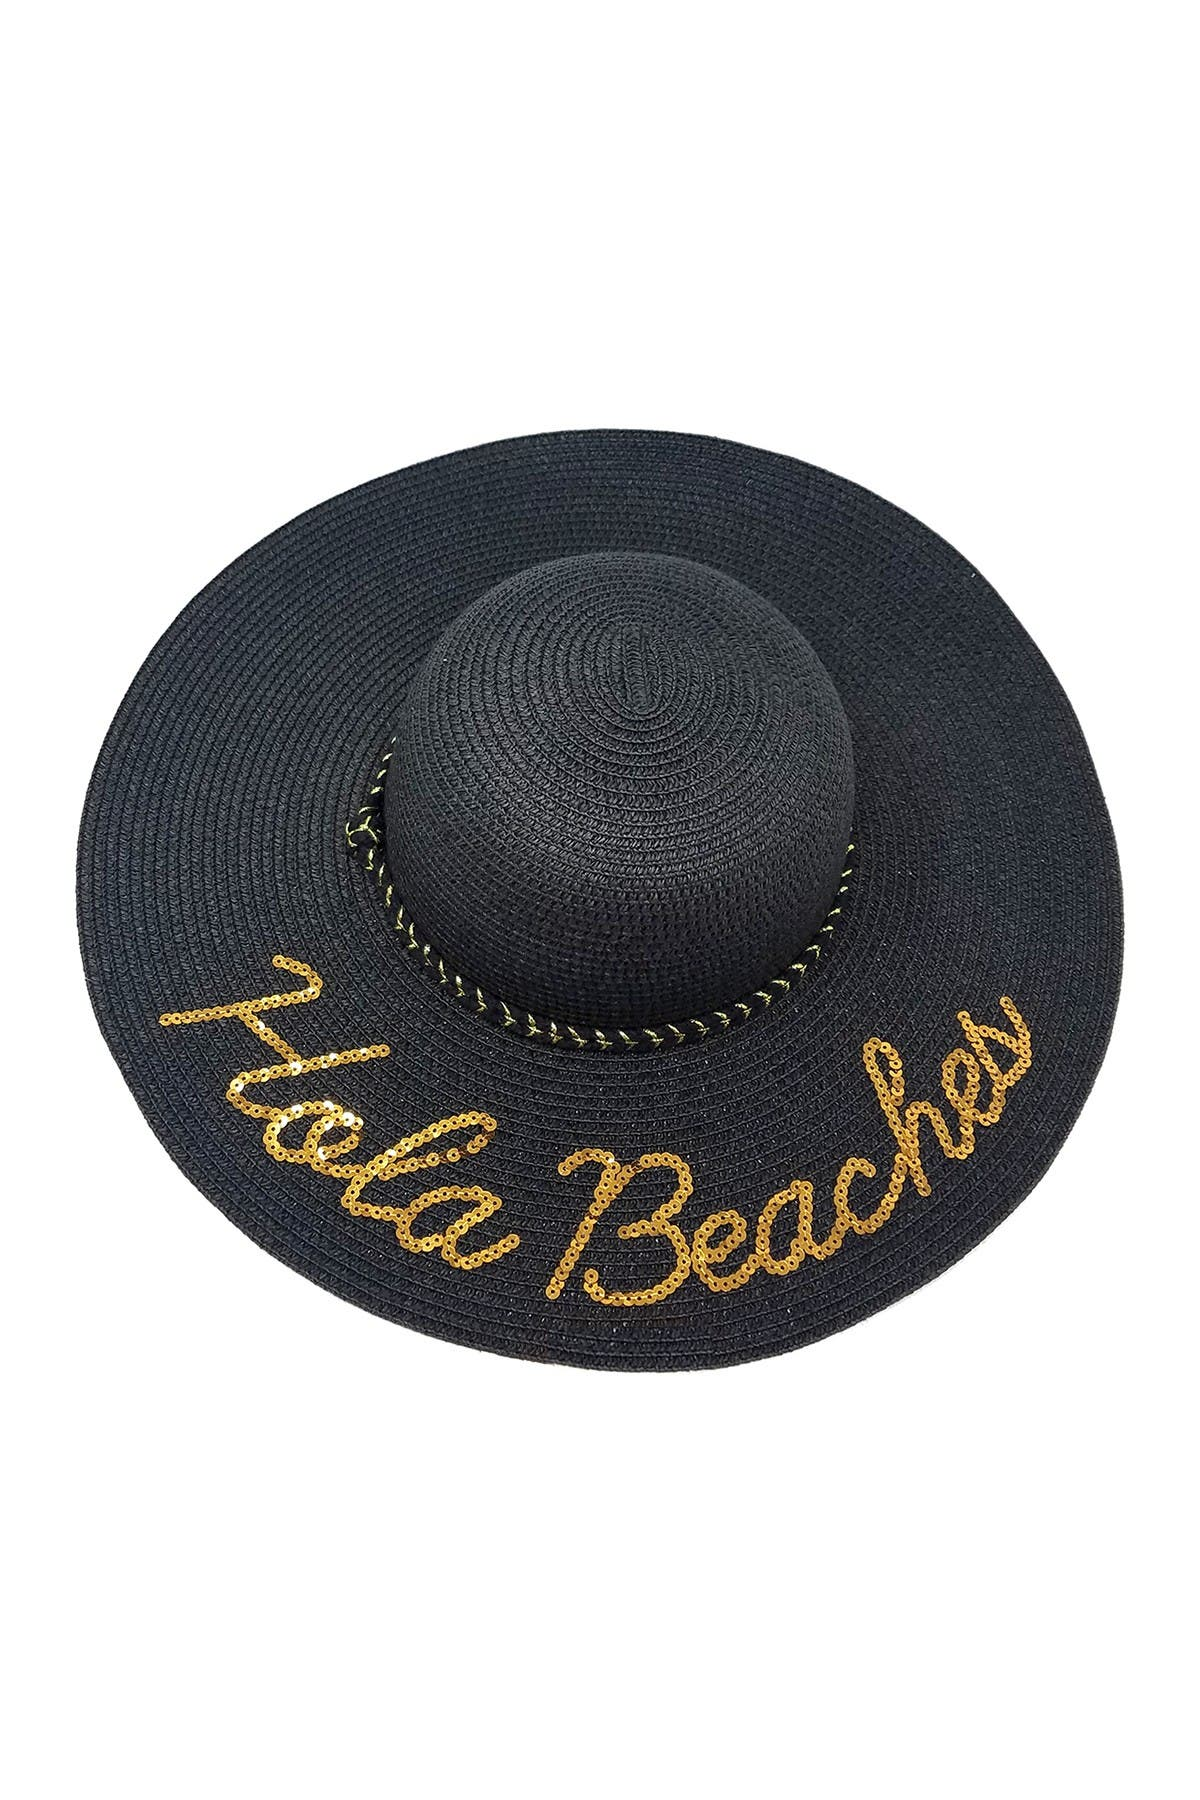 Image of David & Young Hola, Beaches Floppy Hat